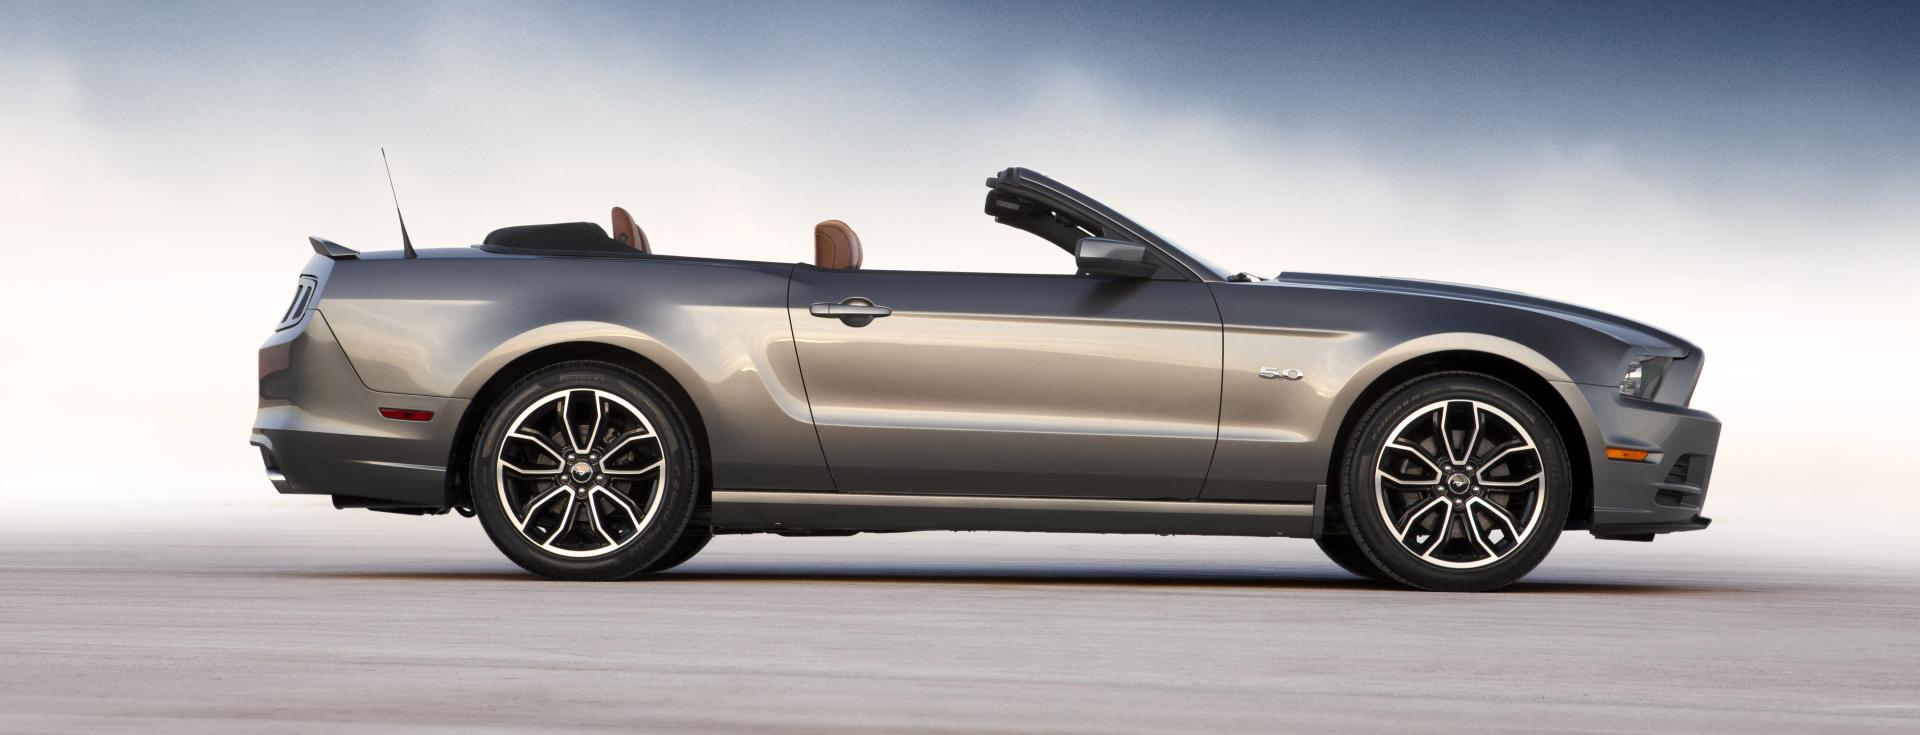 2014 Ford Mustang News And Information Conceptcarz Com